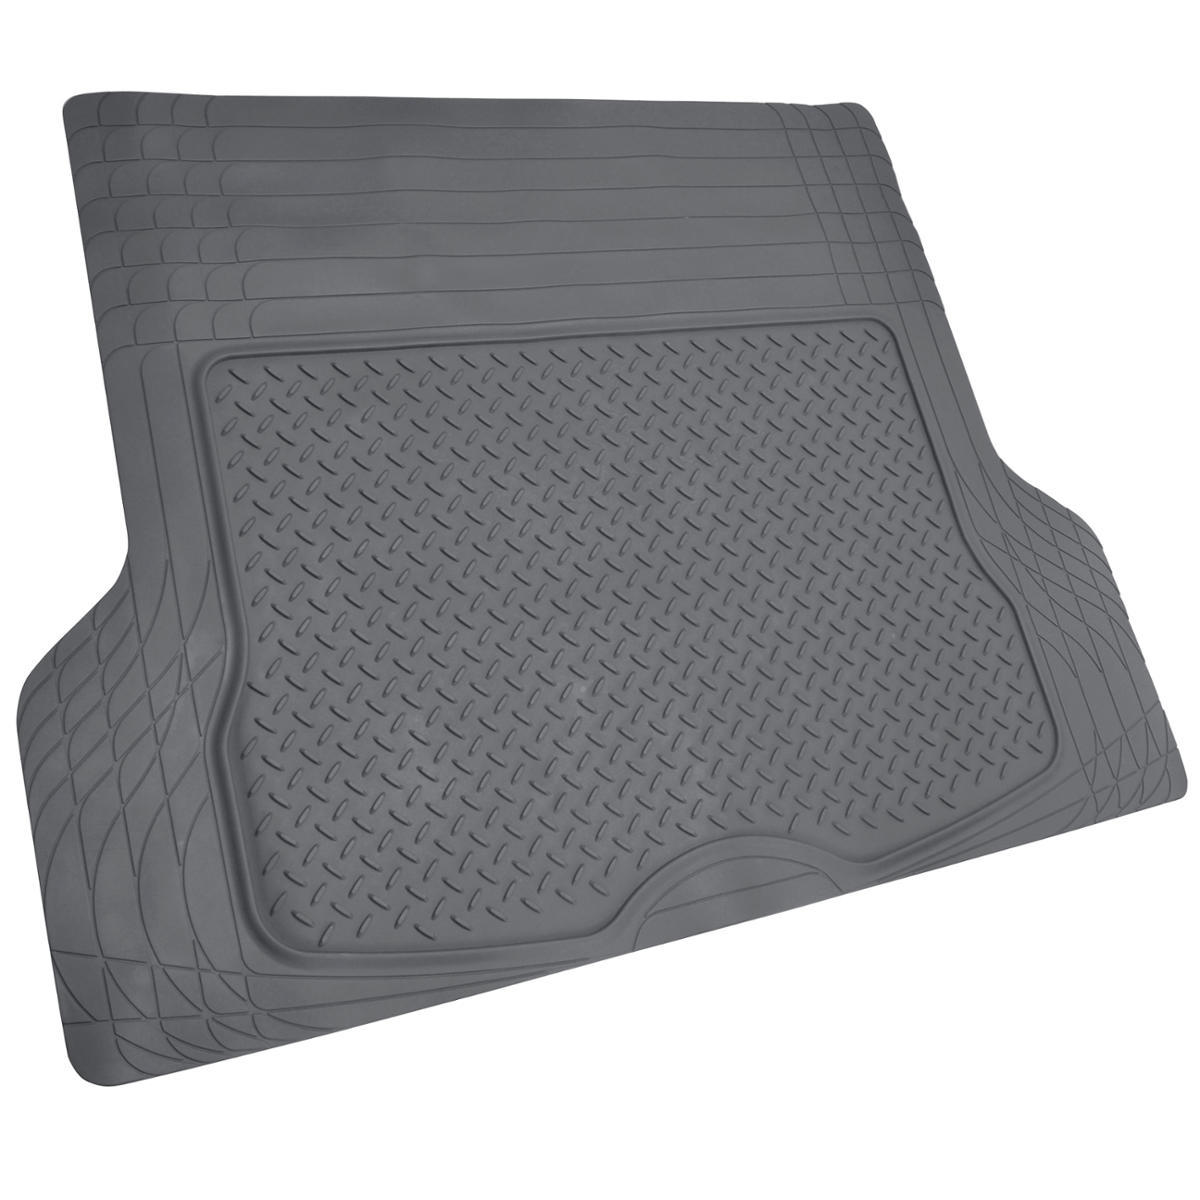 Rubber Floor Mats : Rubber floor mat for car suv hd all weather liner gray w